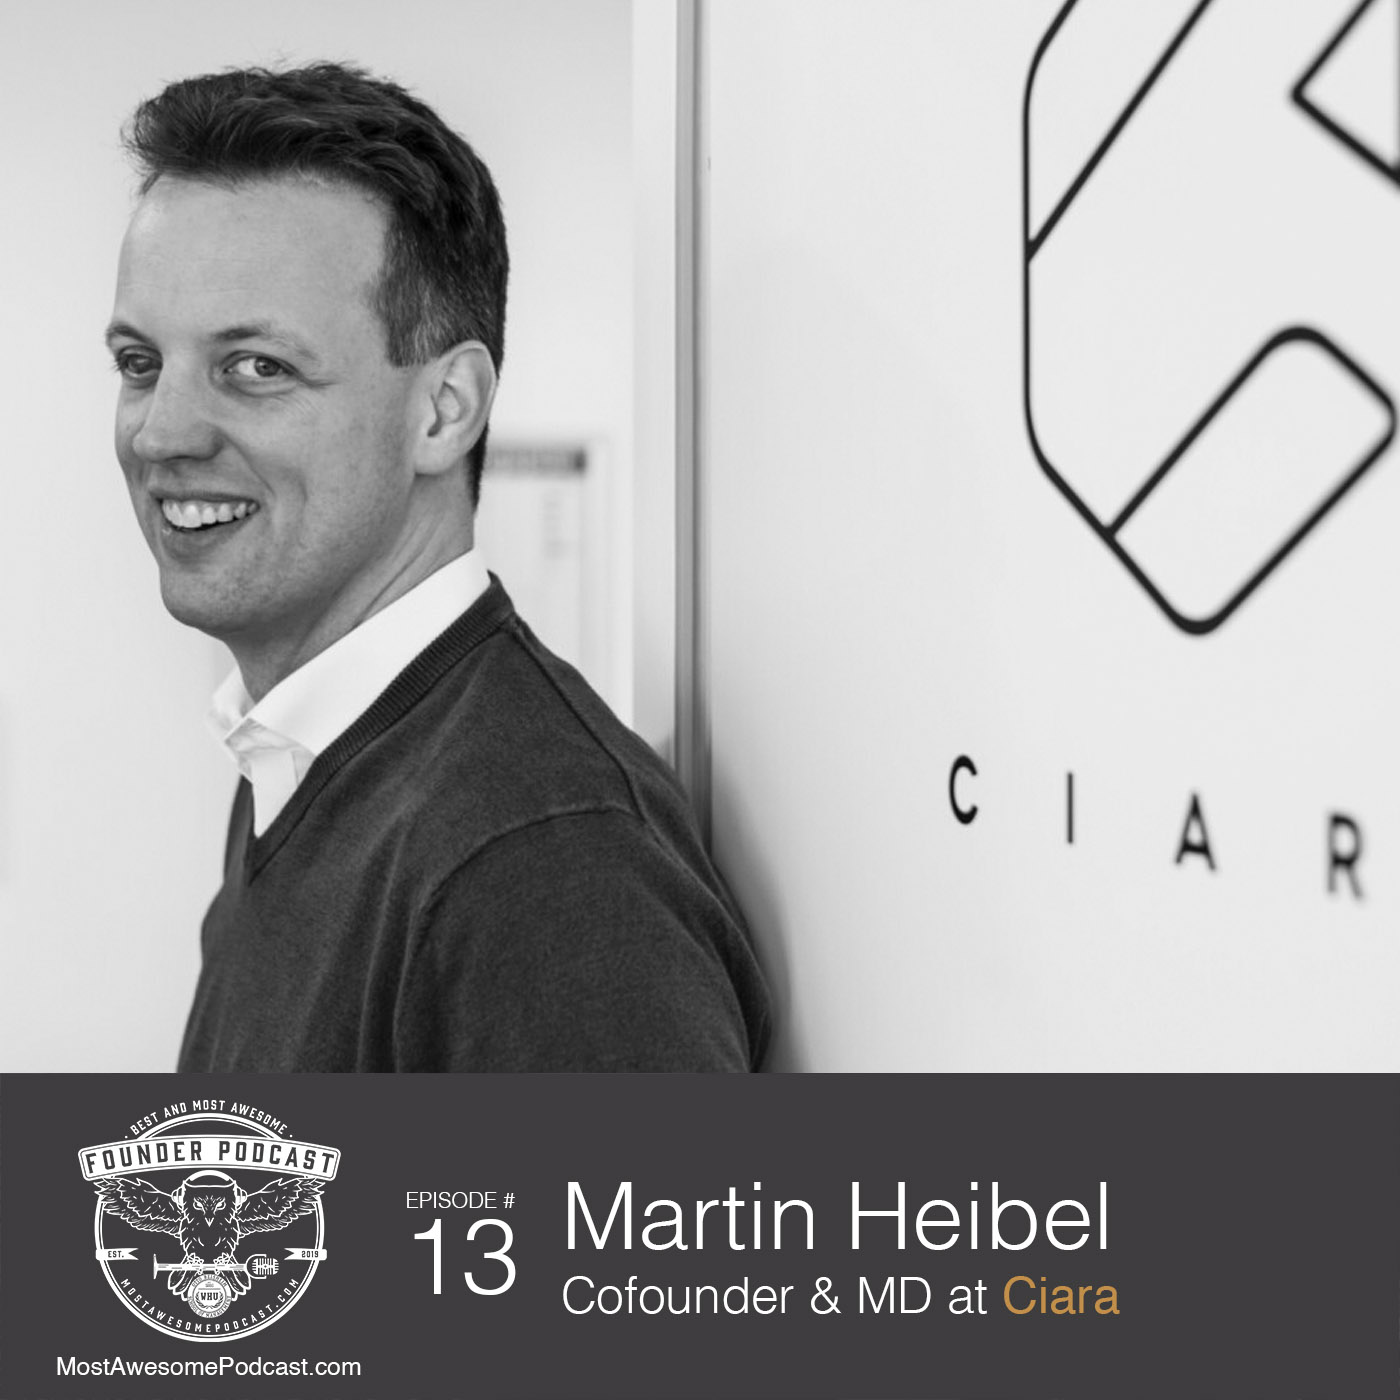 Ep. 13 - Founder-Market Fit with Martin Heibel